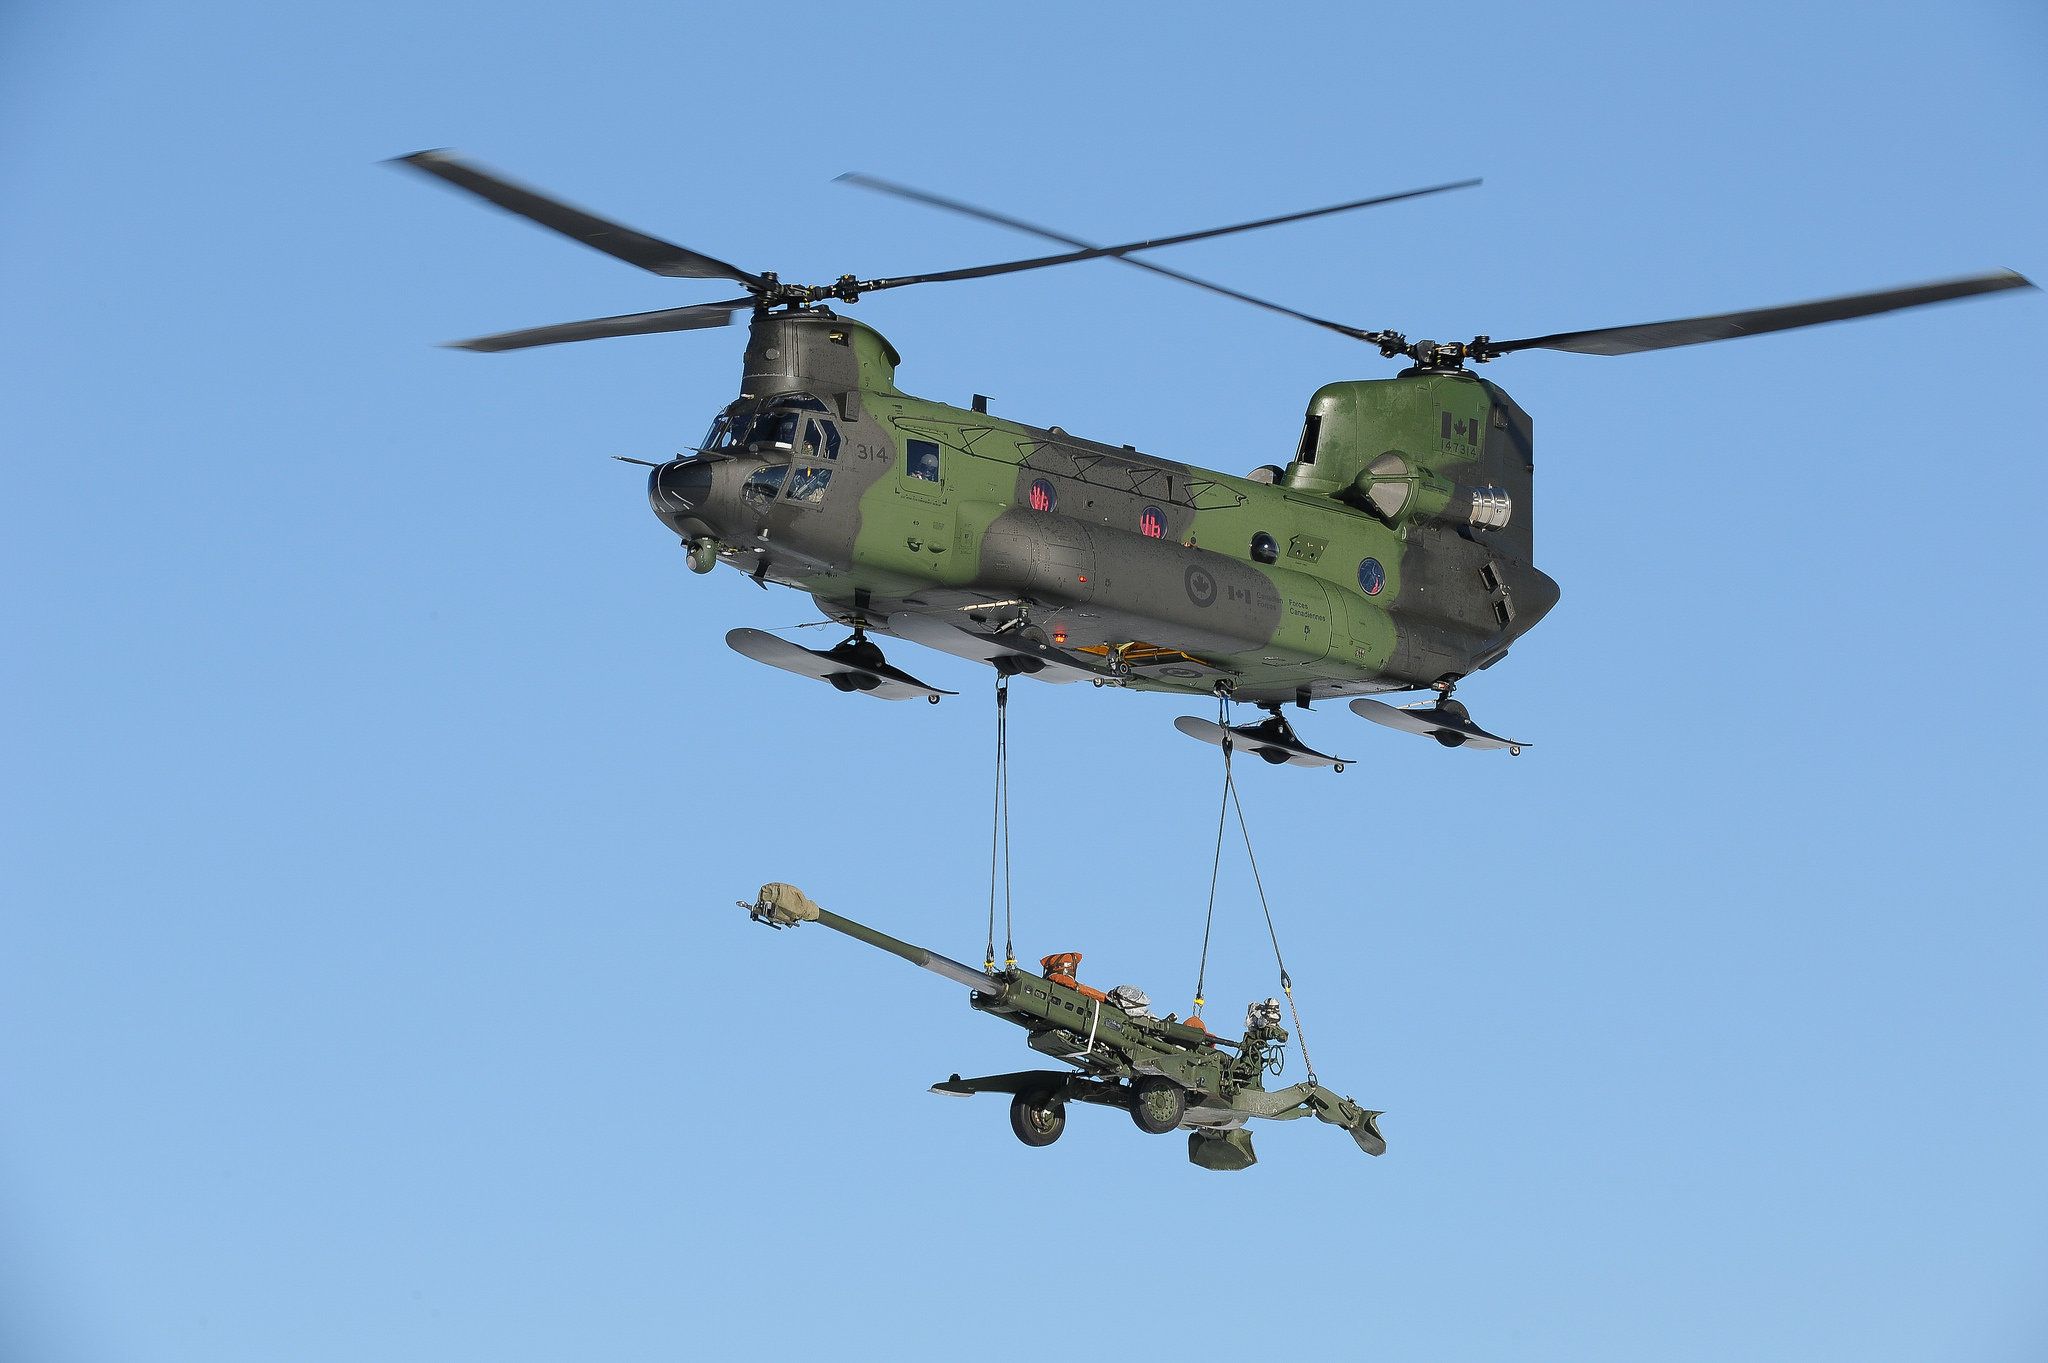 A Canadian Army Helicopter carries a M777 howitzer as under sling load. Source - Net.